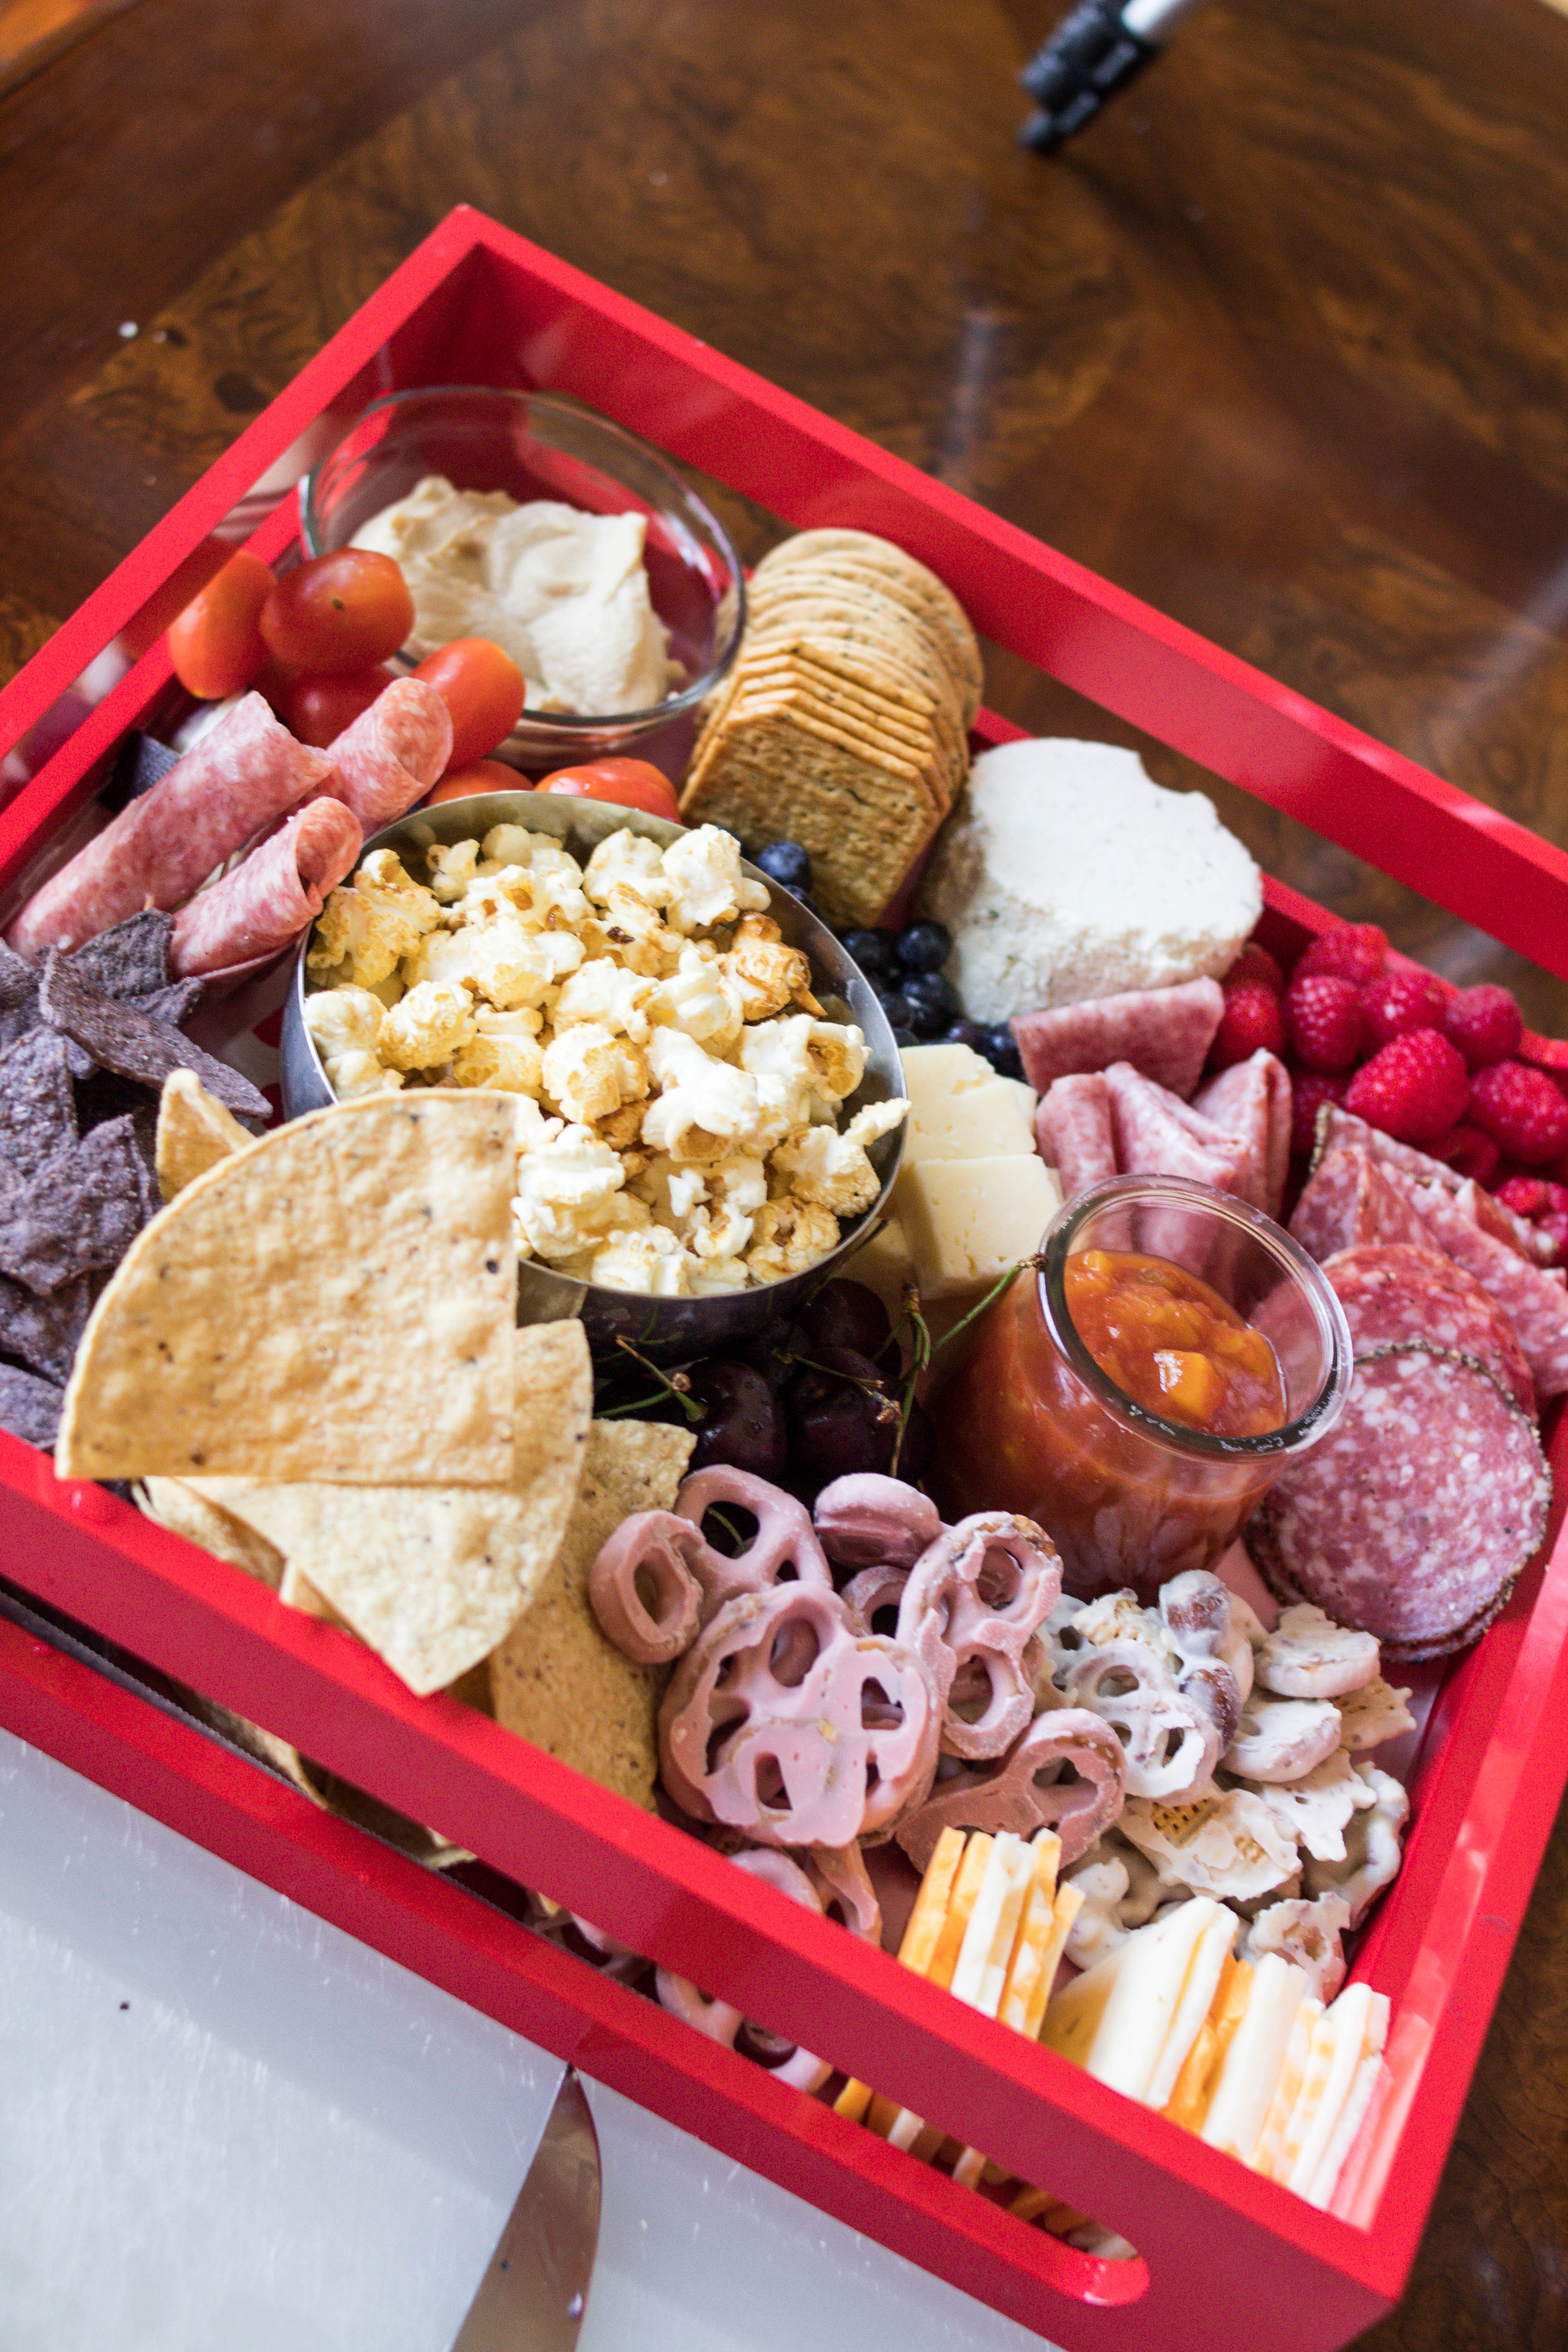 Grazing boards are all the rage right now! Lifestyle blogger, What Nicole Wore, takes you through how to assemble the best charcuterie board. // salami appetizer, appetizer board, charcuterie board tips, grazing board ideas, cheese and crackers